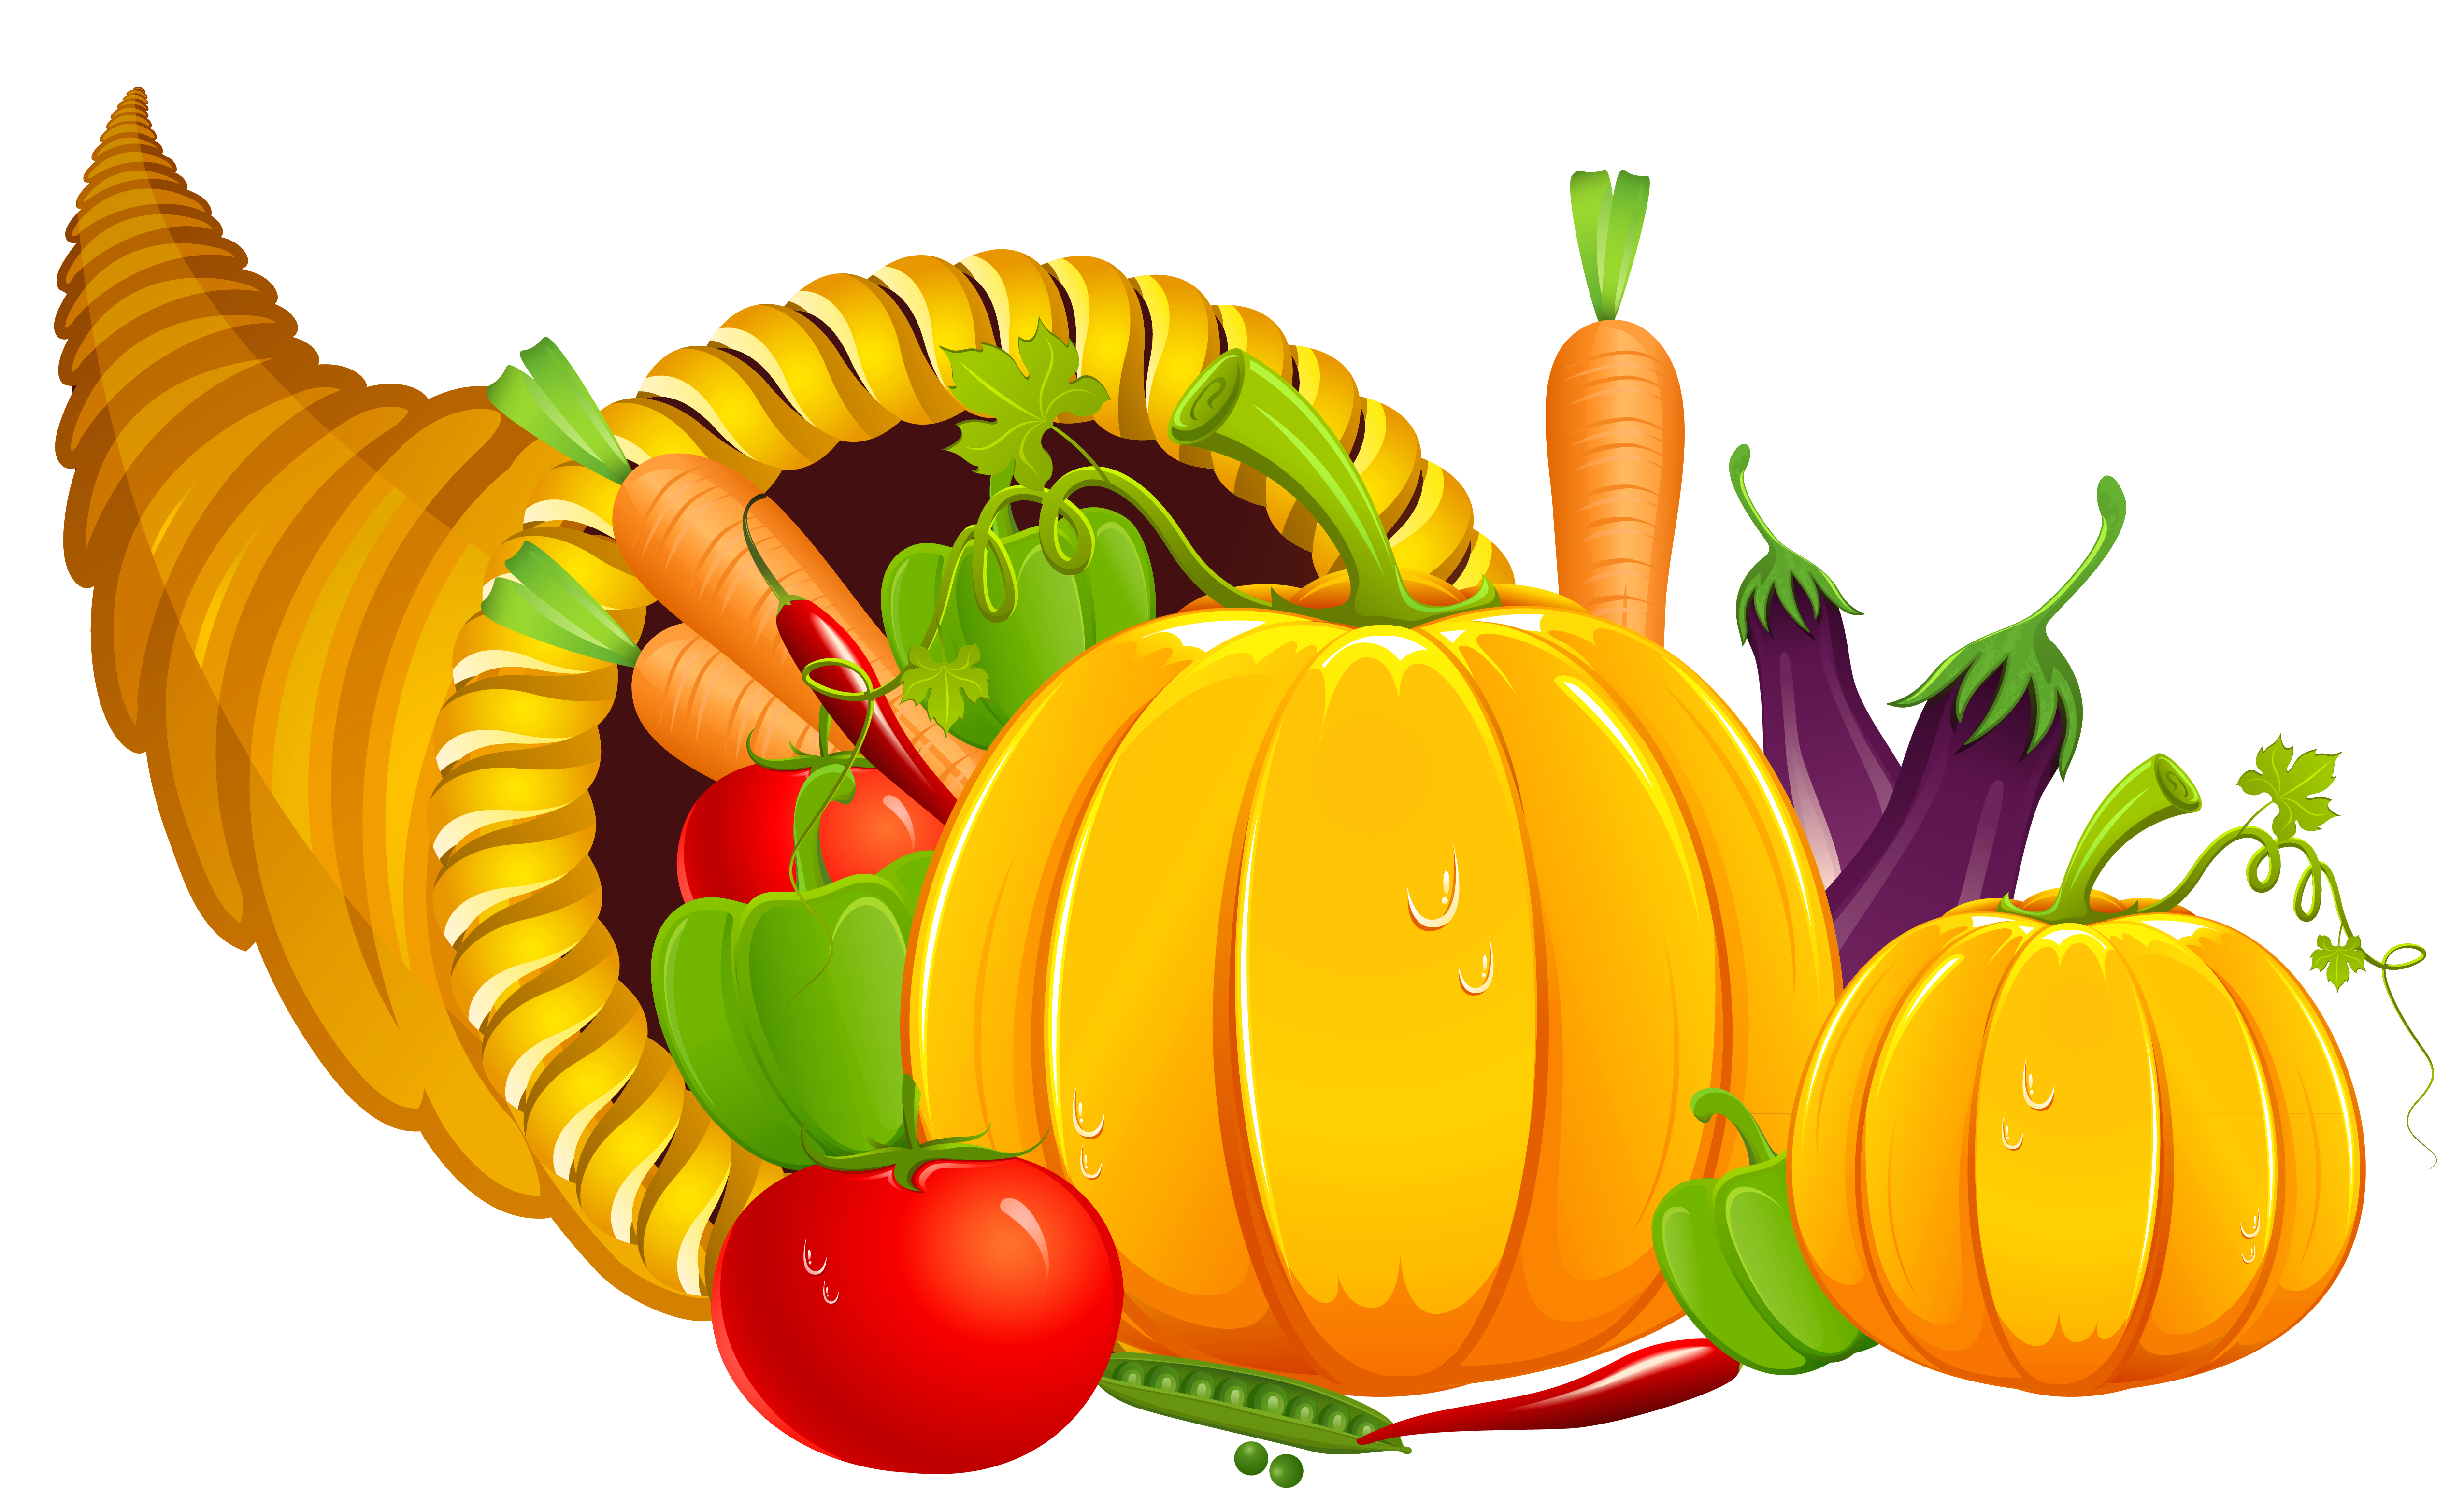 Happy thanksgiving espanol clipart graphic transparent stock Thanksgiving Cornucopia PNG Clipart | Gallery Yopriceville - High ... graphic transparent stock